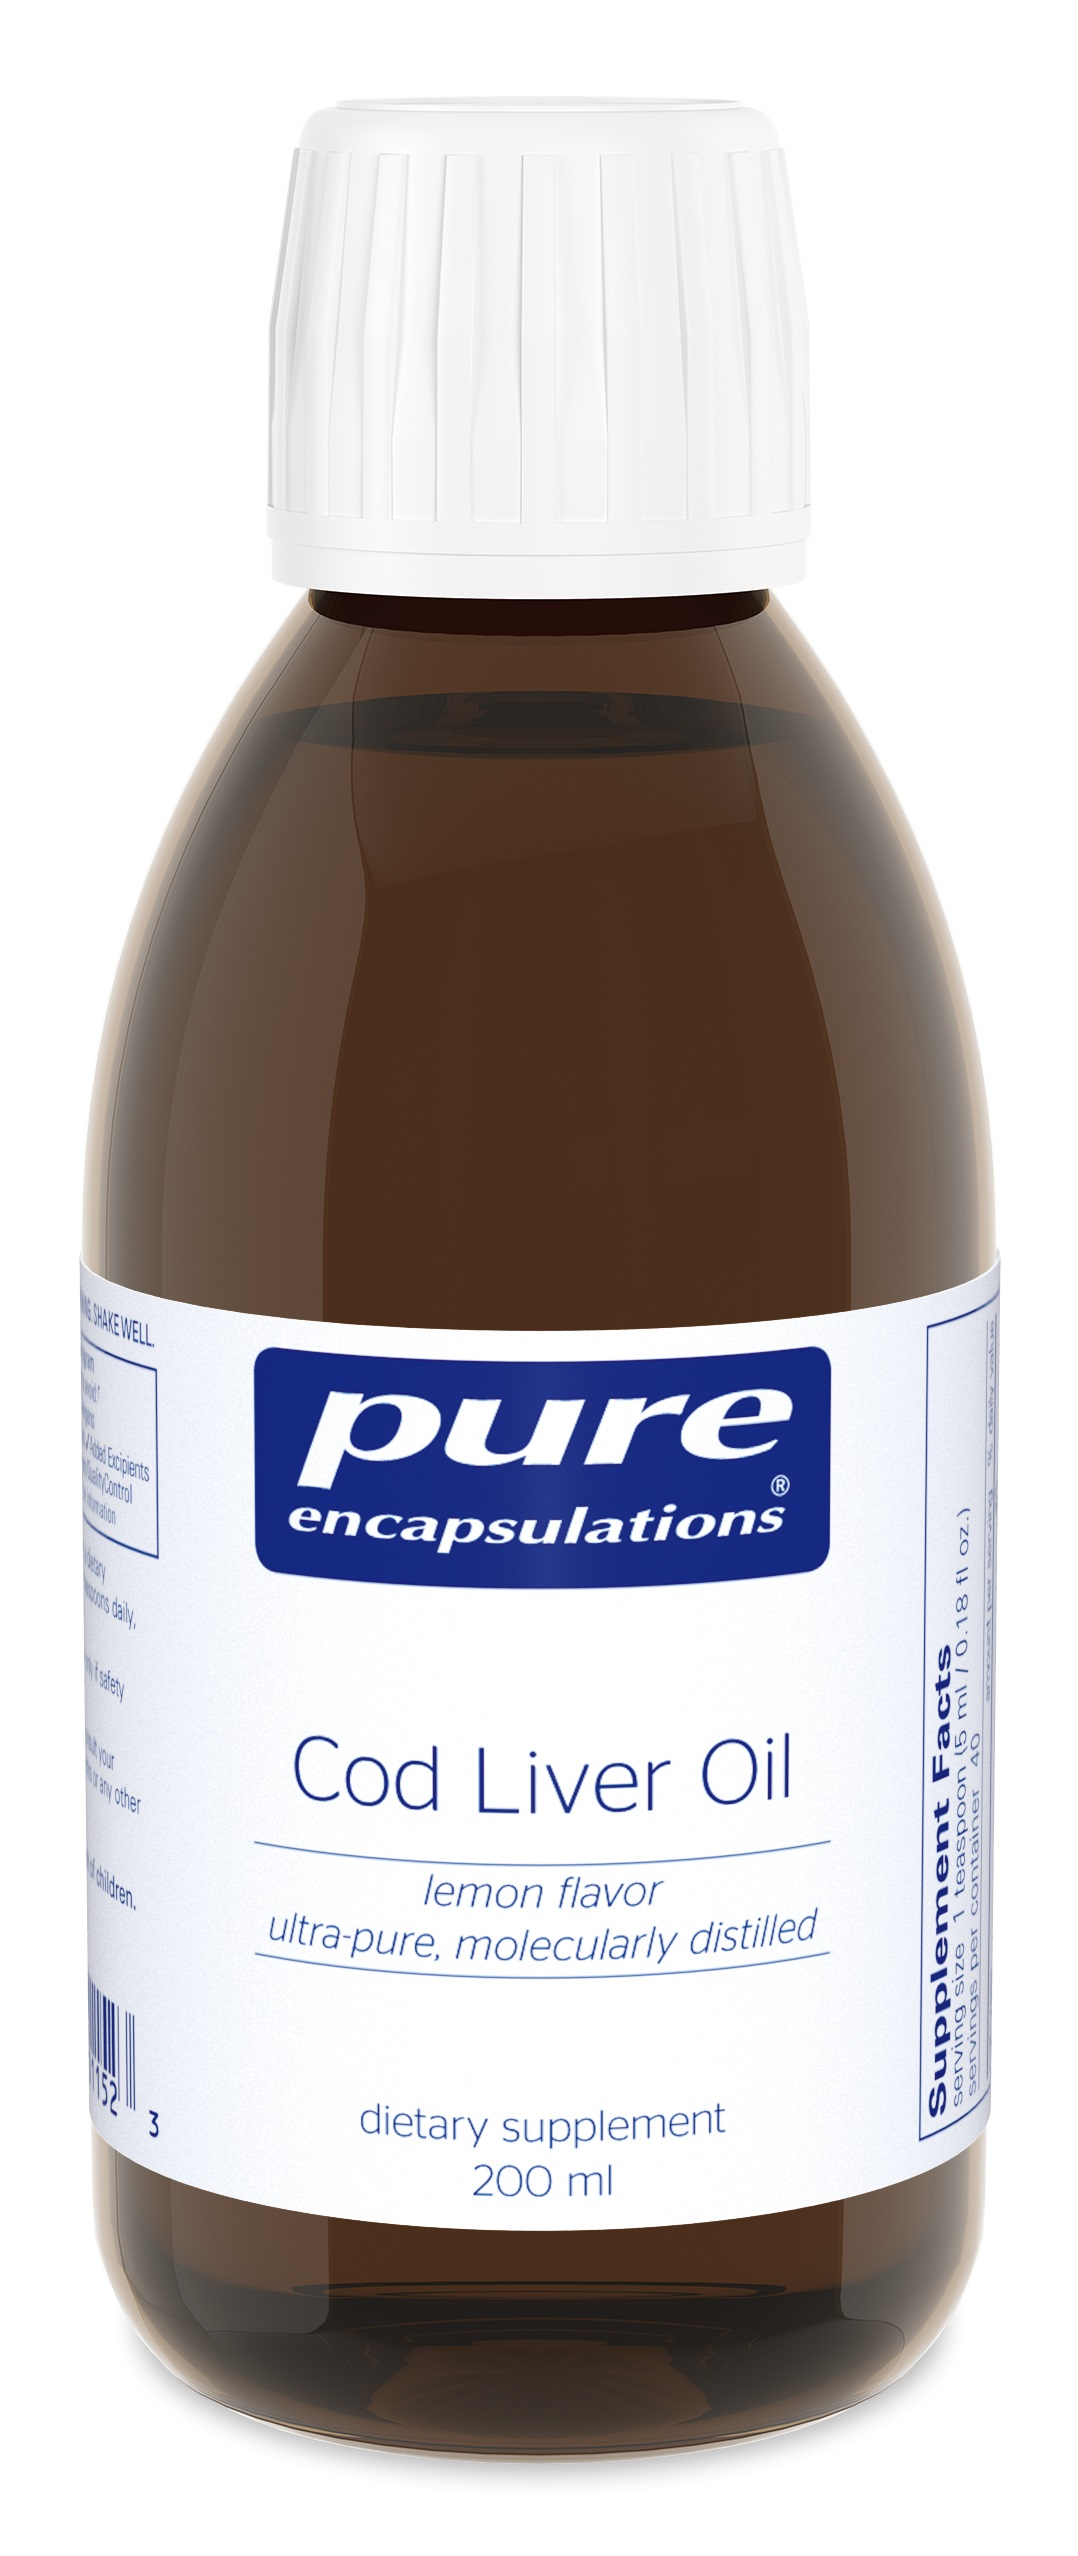 Pure Encapsulations Cod Liver Oil (lemon flavor)